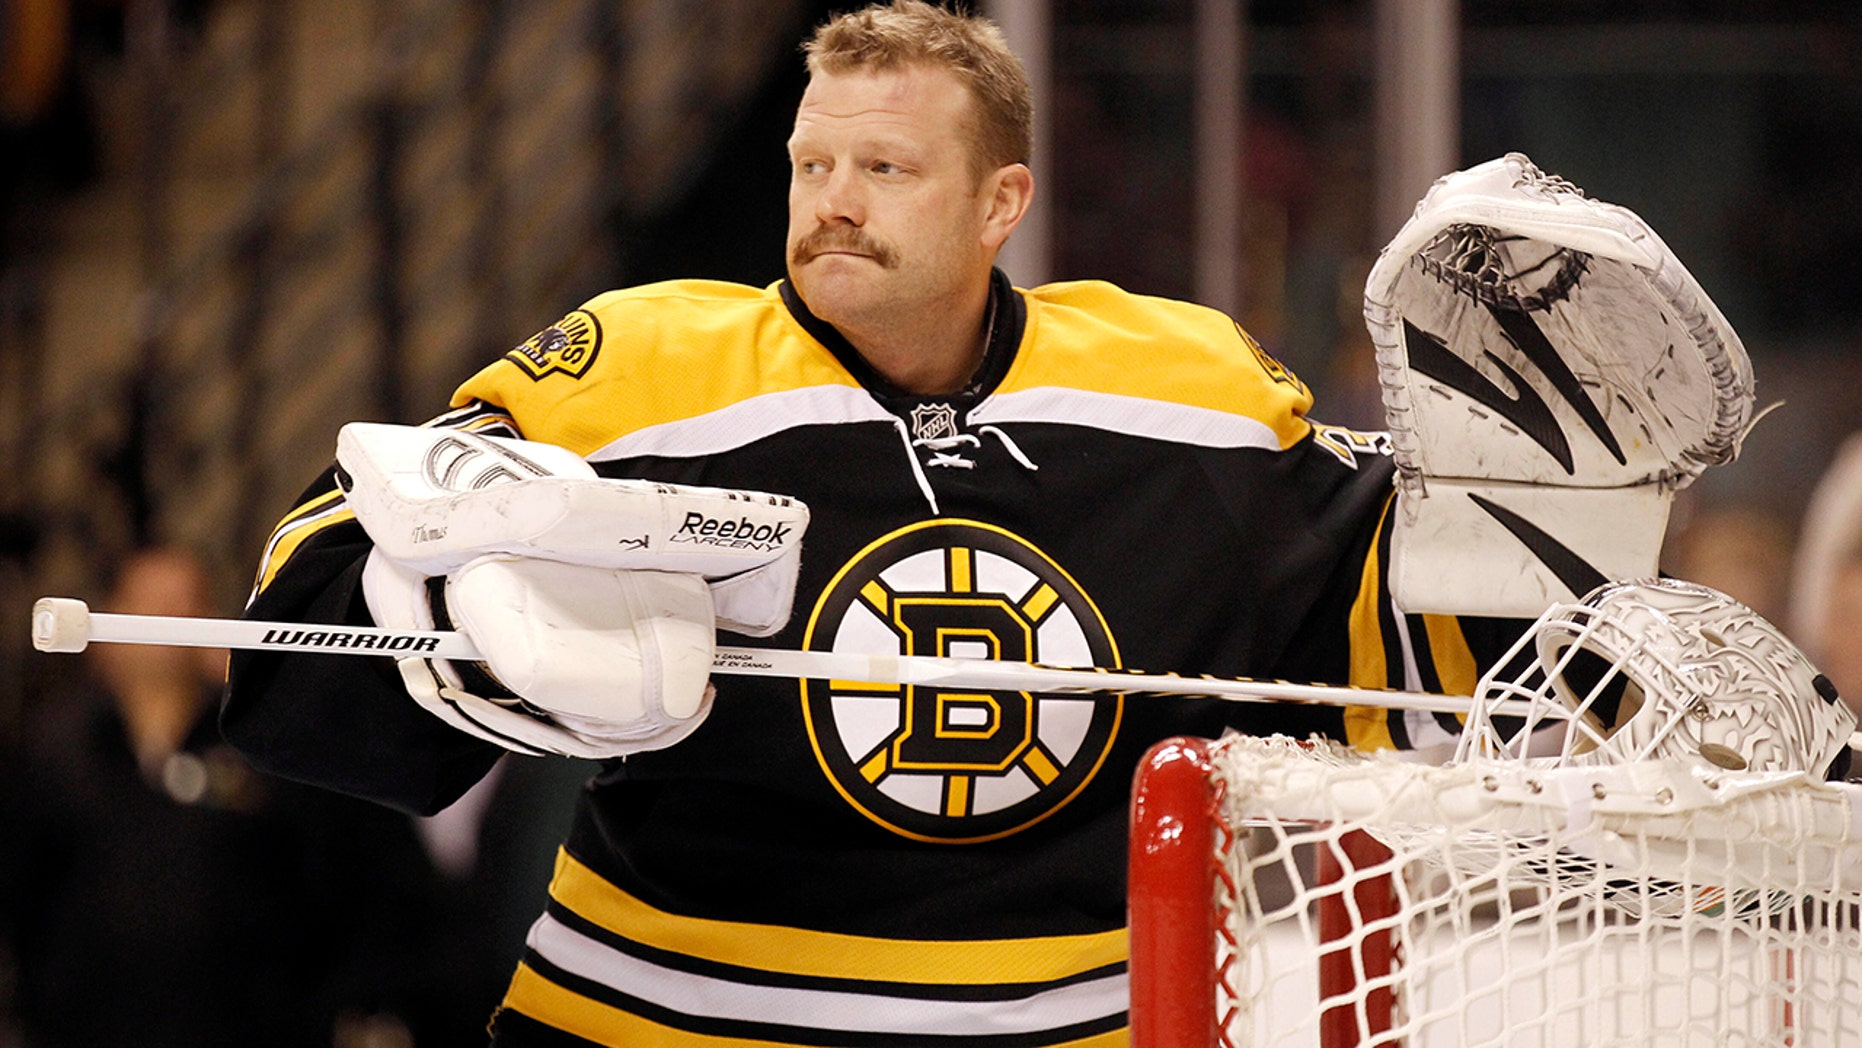 FILE - In this Feb. 4, 2012, file photo, Boston Bruins goalie Tim Thomas is shown before an NHL hockey game agains the Pittsburgh Penguins in Boston. (AP Photo/Winslow Townson, File)